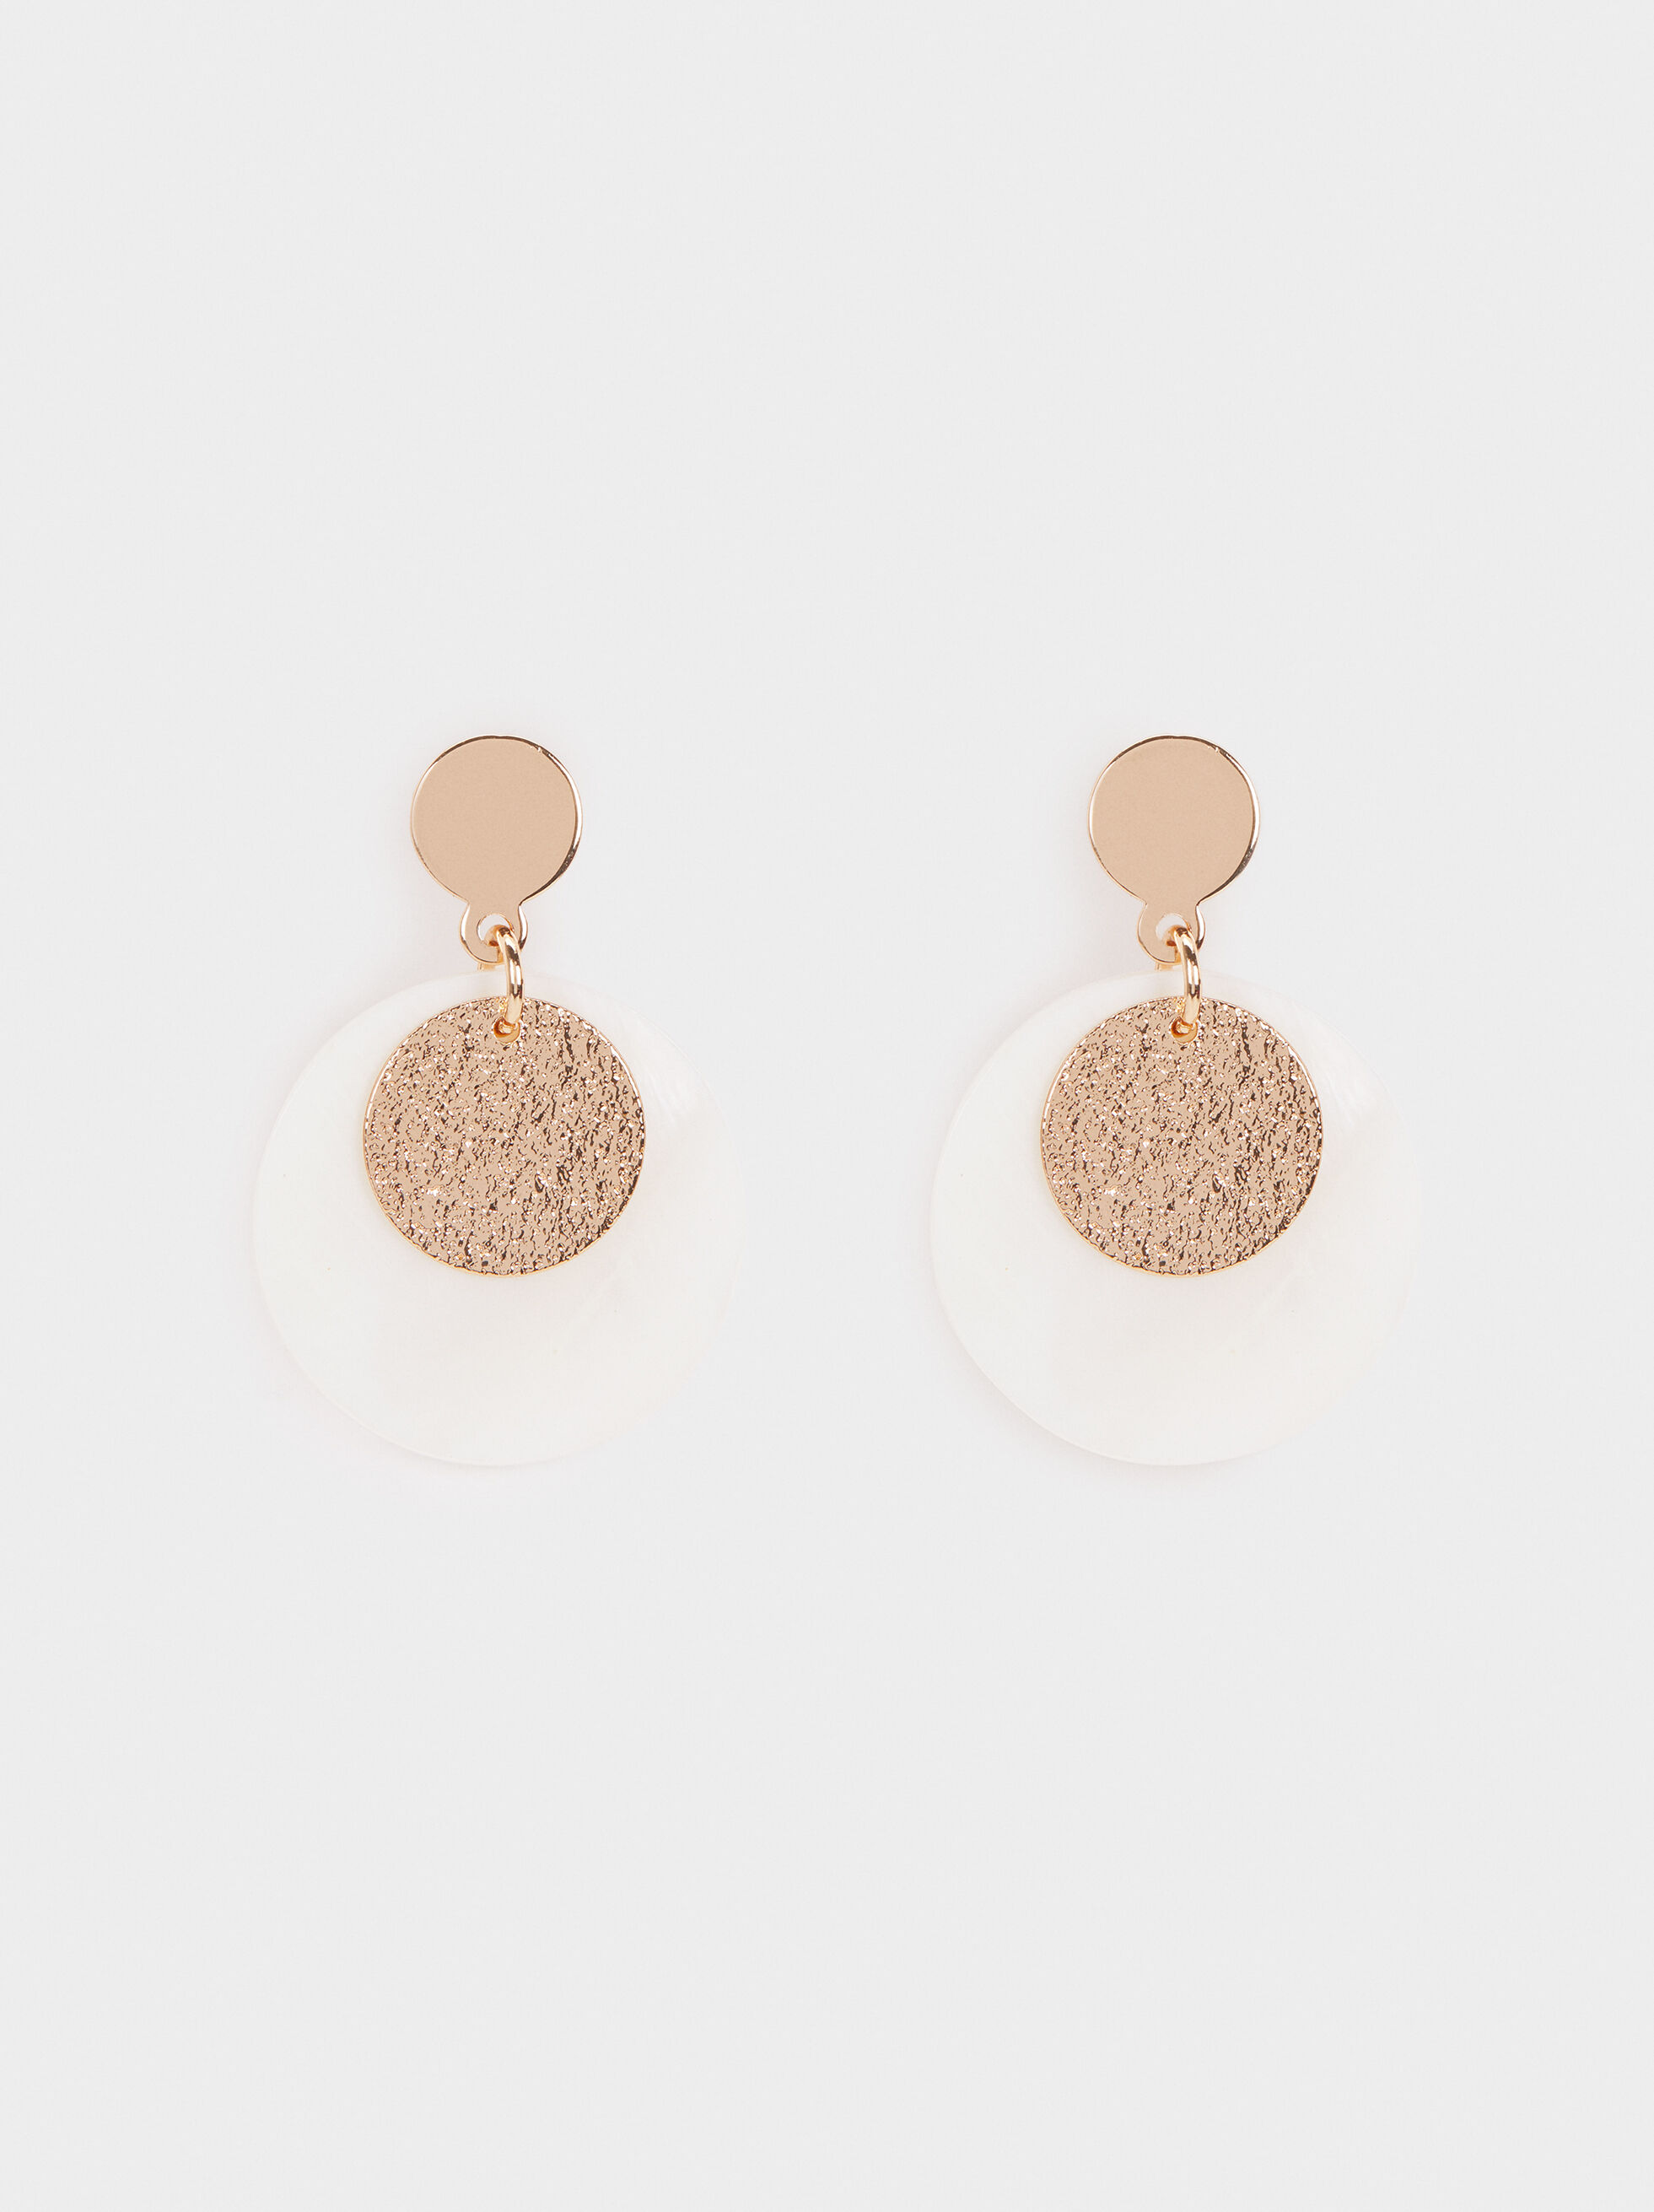 Medium Circle Earrings, , hi-res